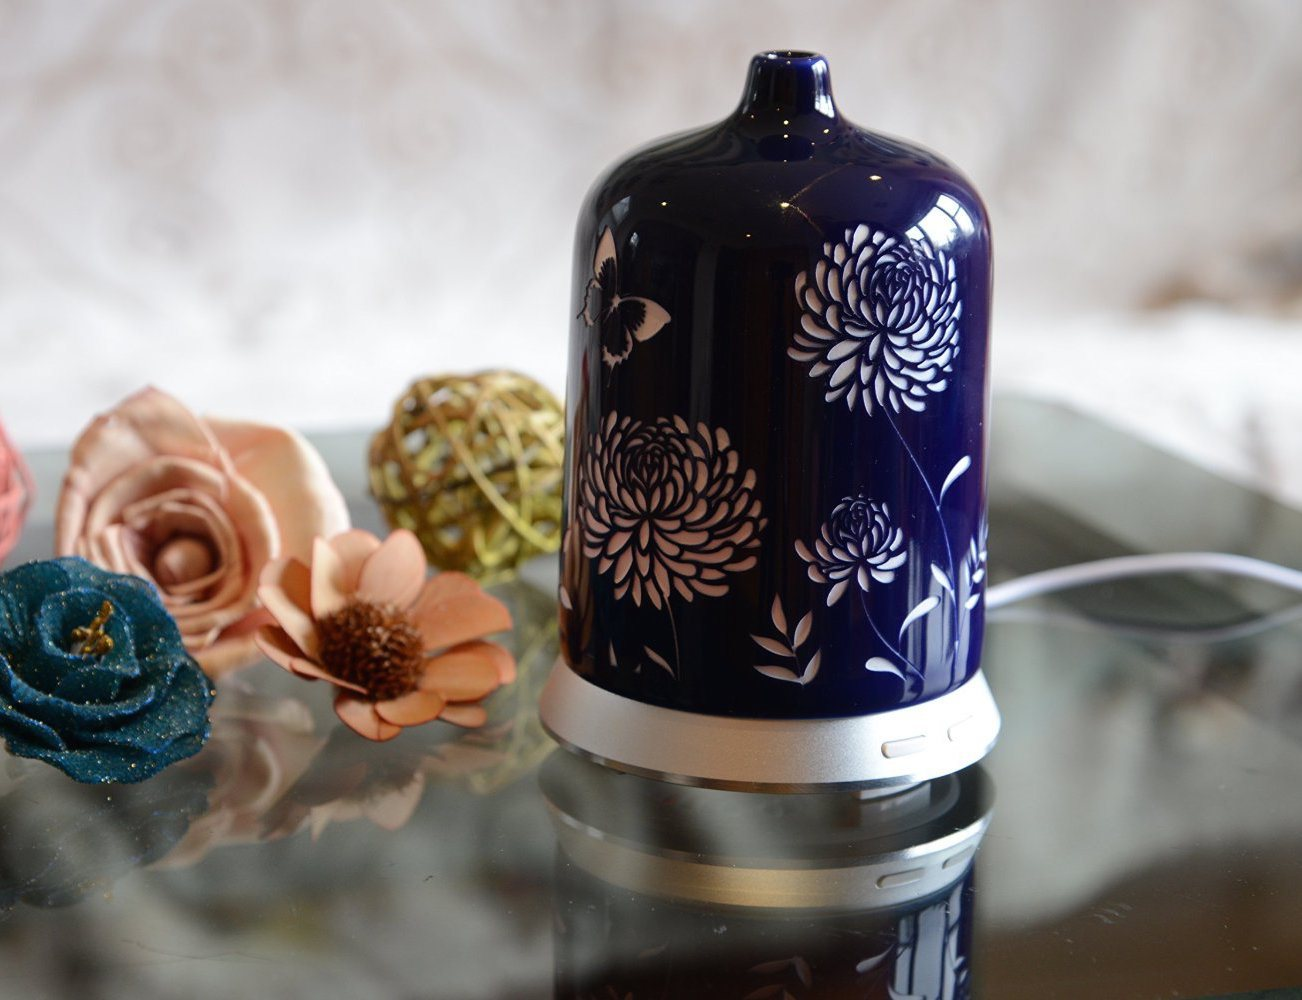 Aromatherapy+Essential+Oil+Diffuser+By+Smiley+Daisy%C2%AE